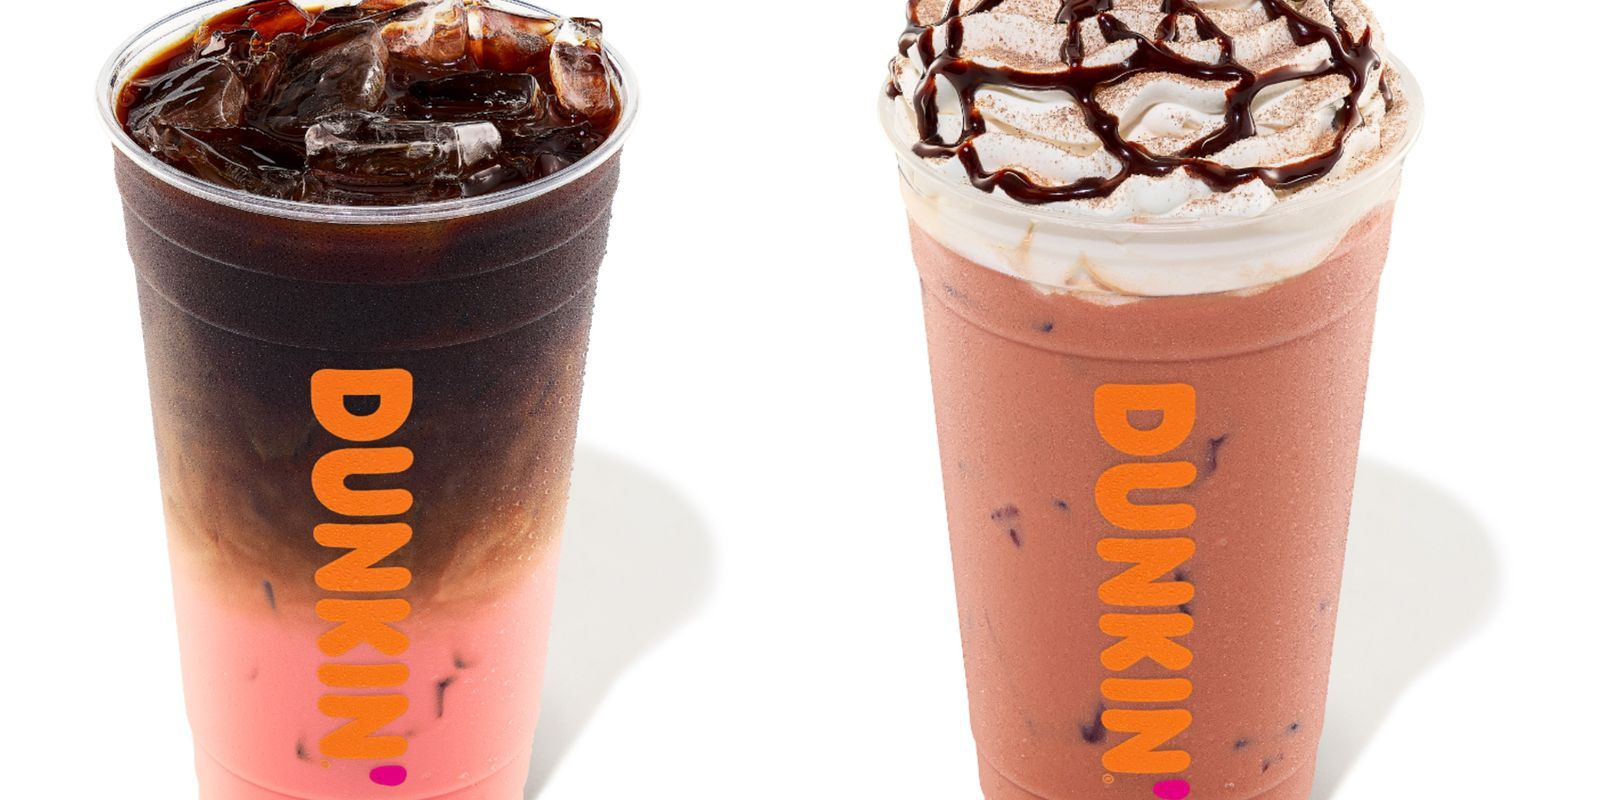 Dunkin' Has A Line Of Pink Velvet Coffee Drinks And